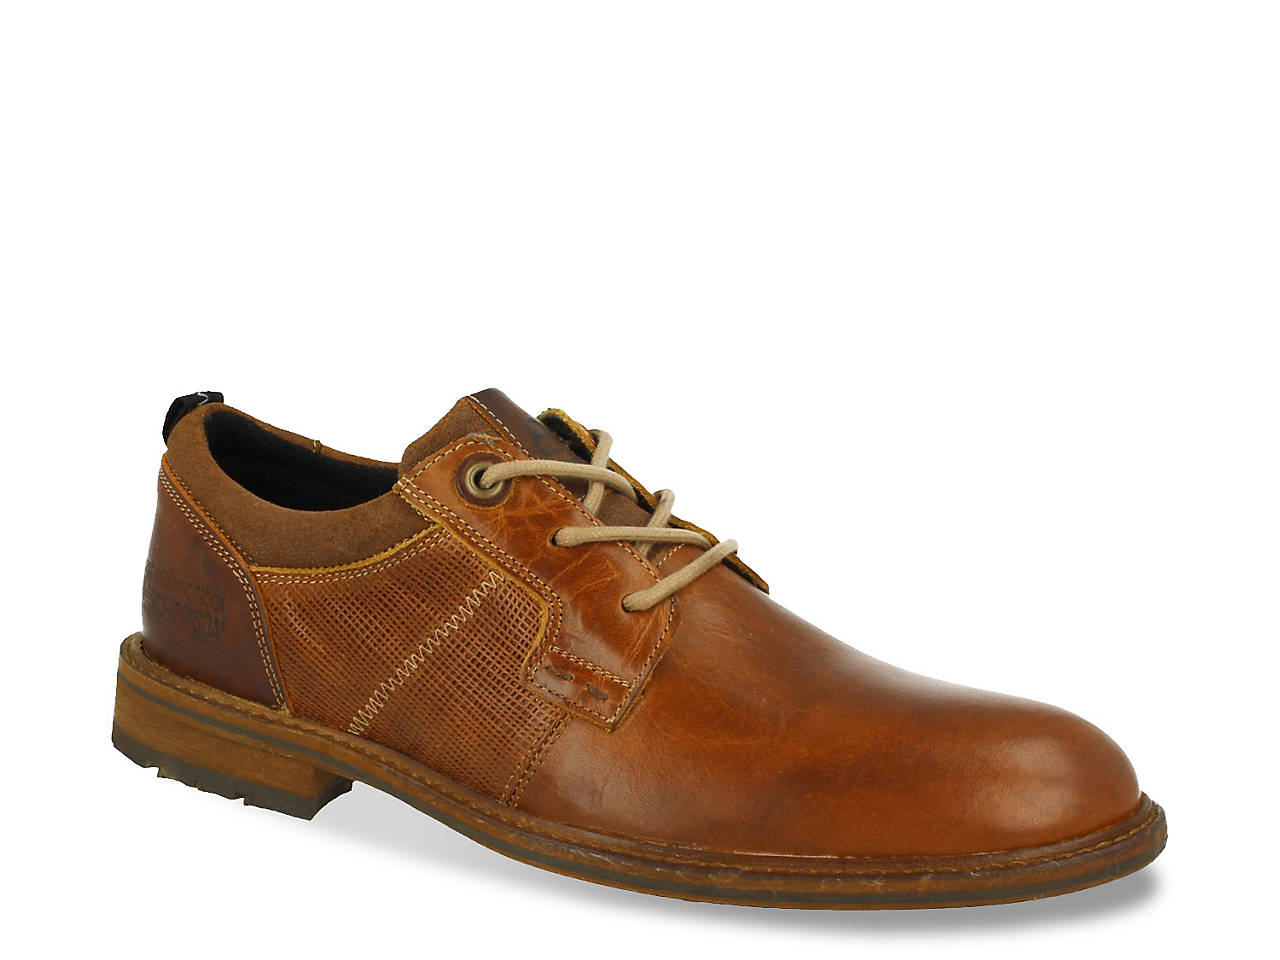 BULL BOXER SHOES SIZE 10 Men's Leather Lace Up Oxford Shoes 10 BULL BOXER 10